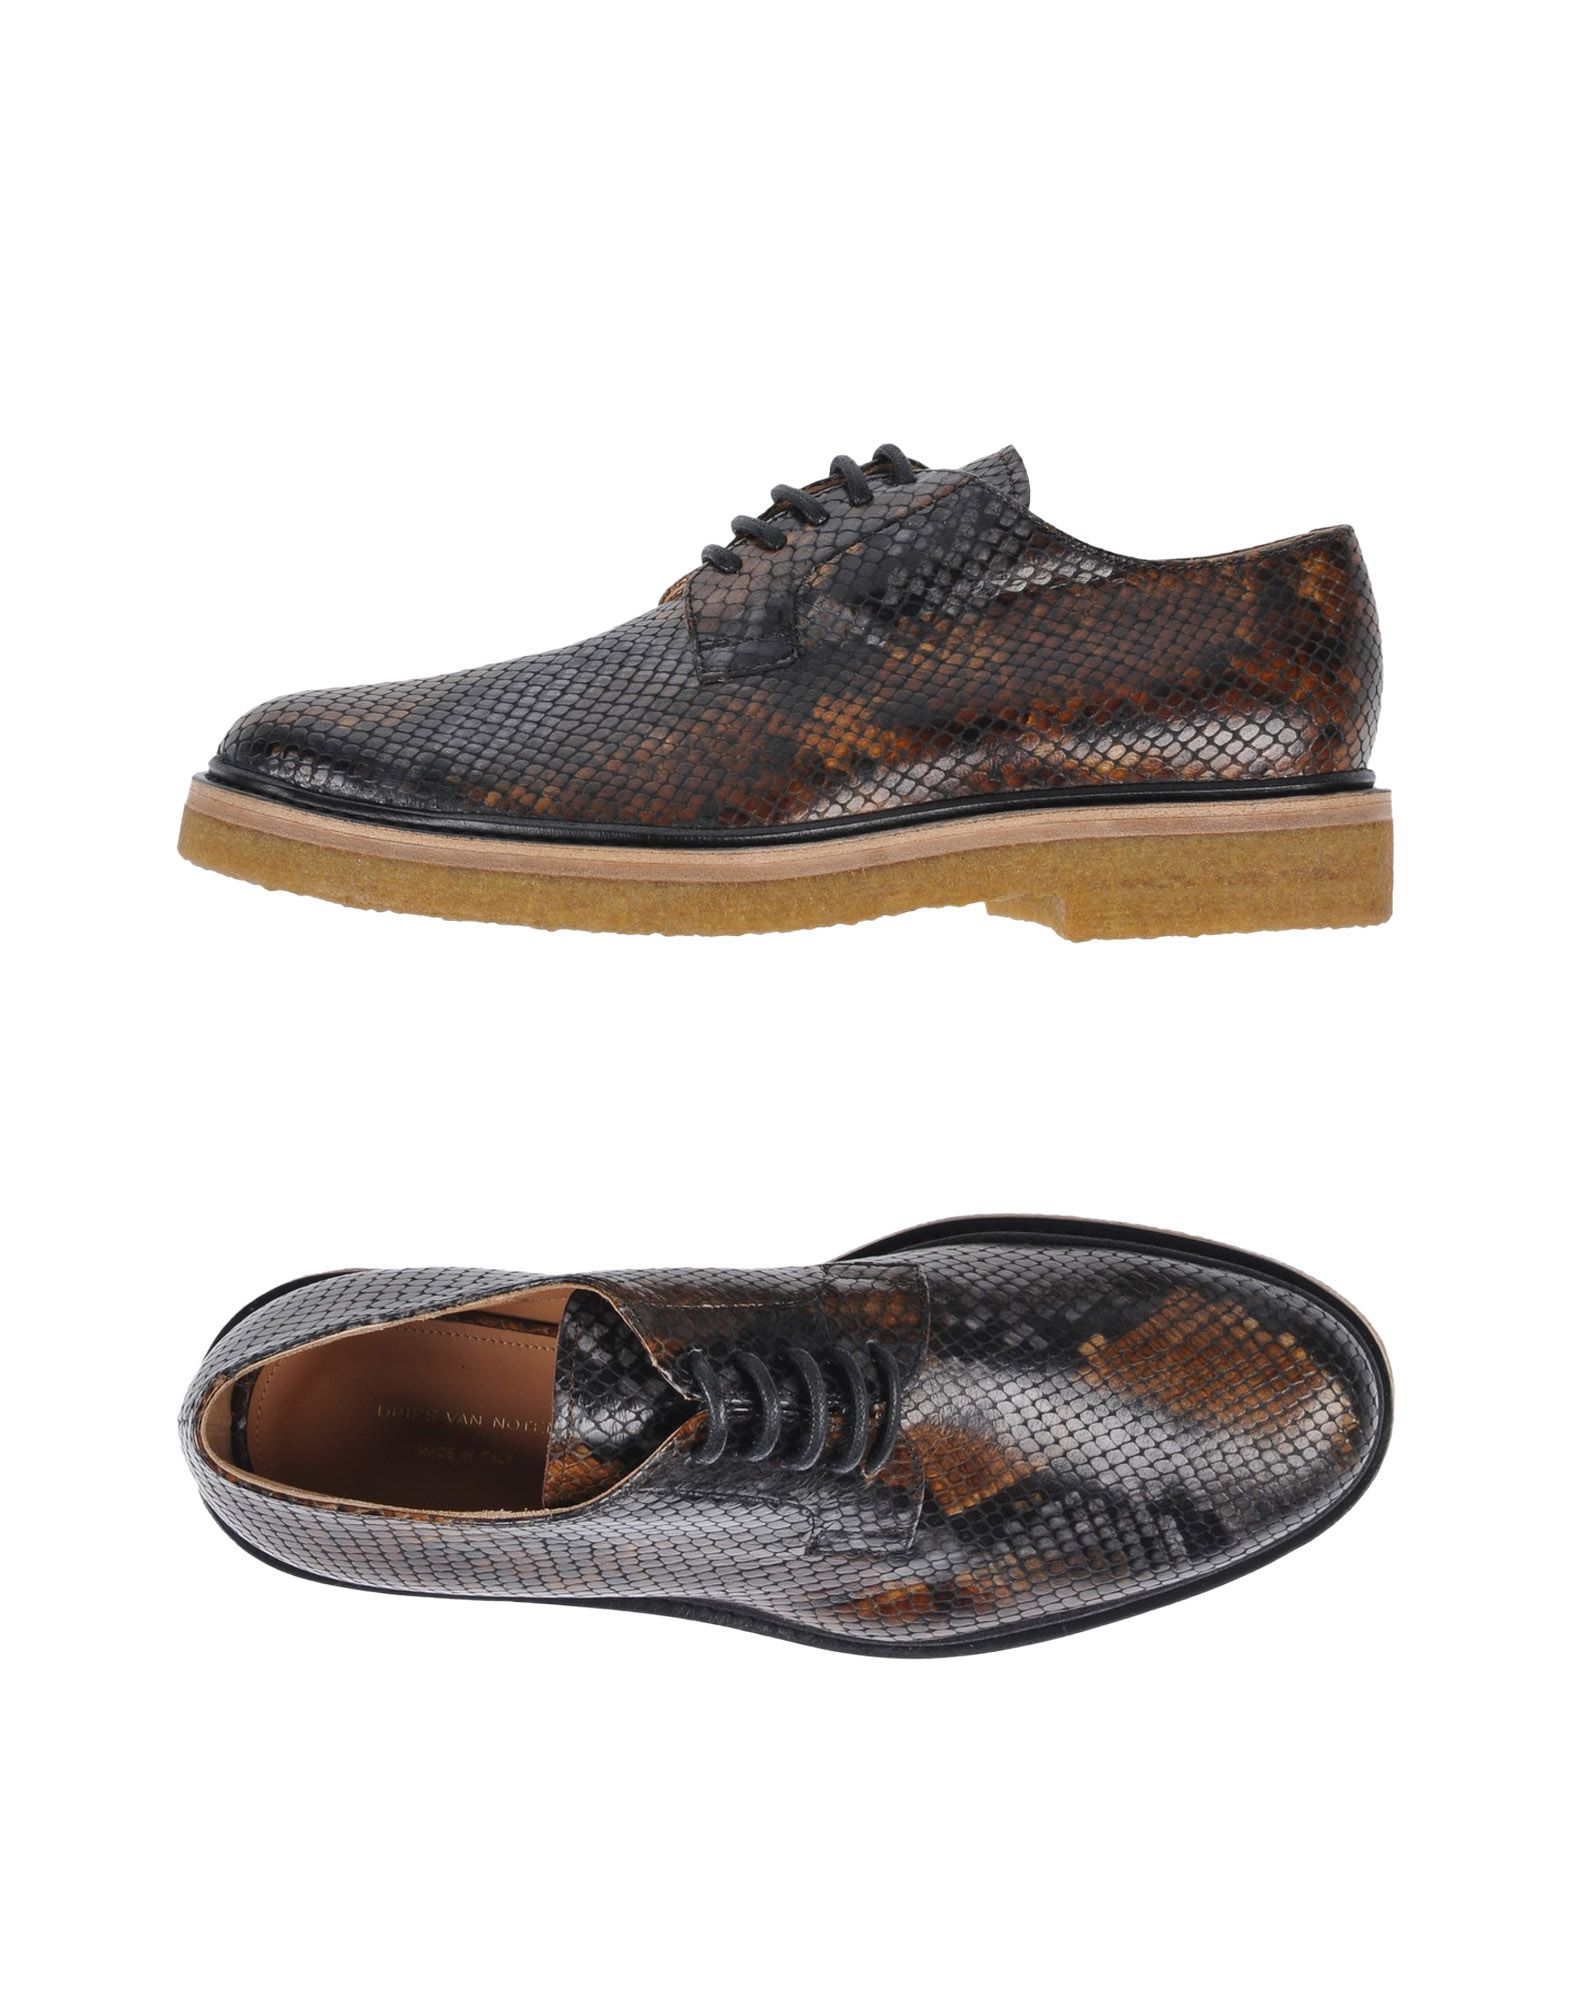 Stringate Dries Van Noten Uomo - 11474614NW